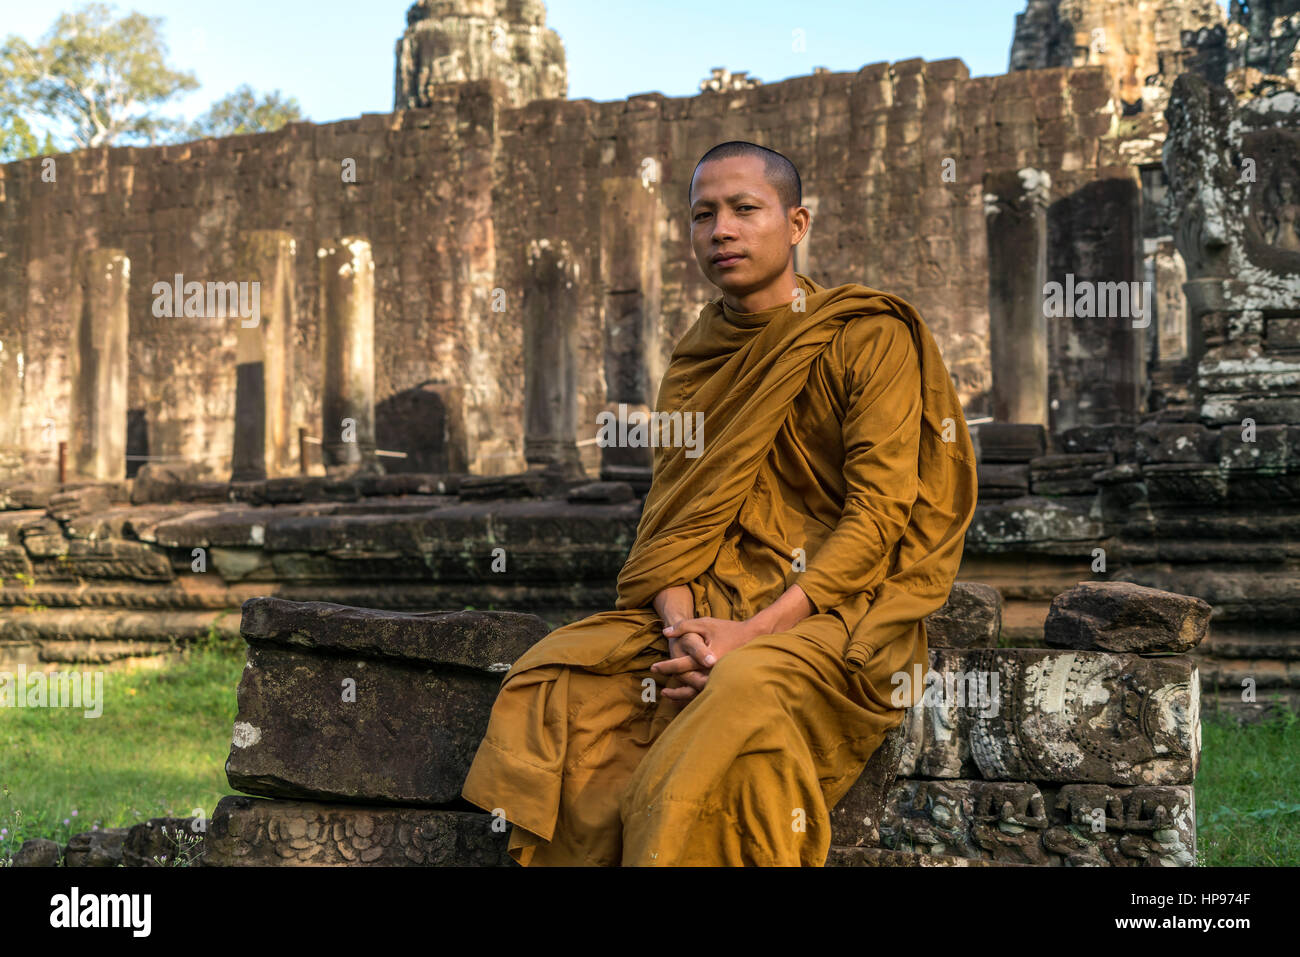 buddhistischer Mönch in der Tempelanlage Bayon, Angkor Thom, Kambodscha, Asien  | buddhist monk at the temple - Stock Image